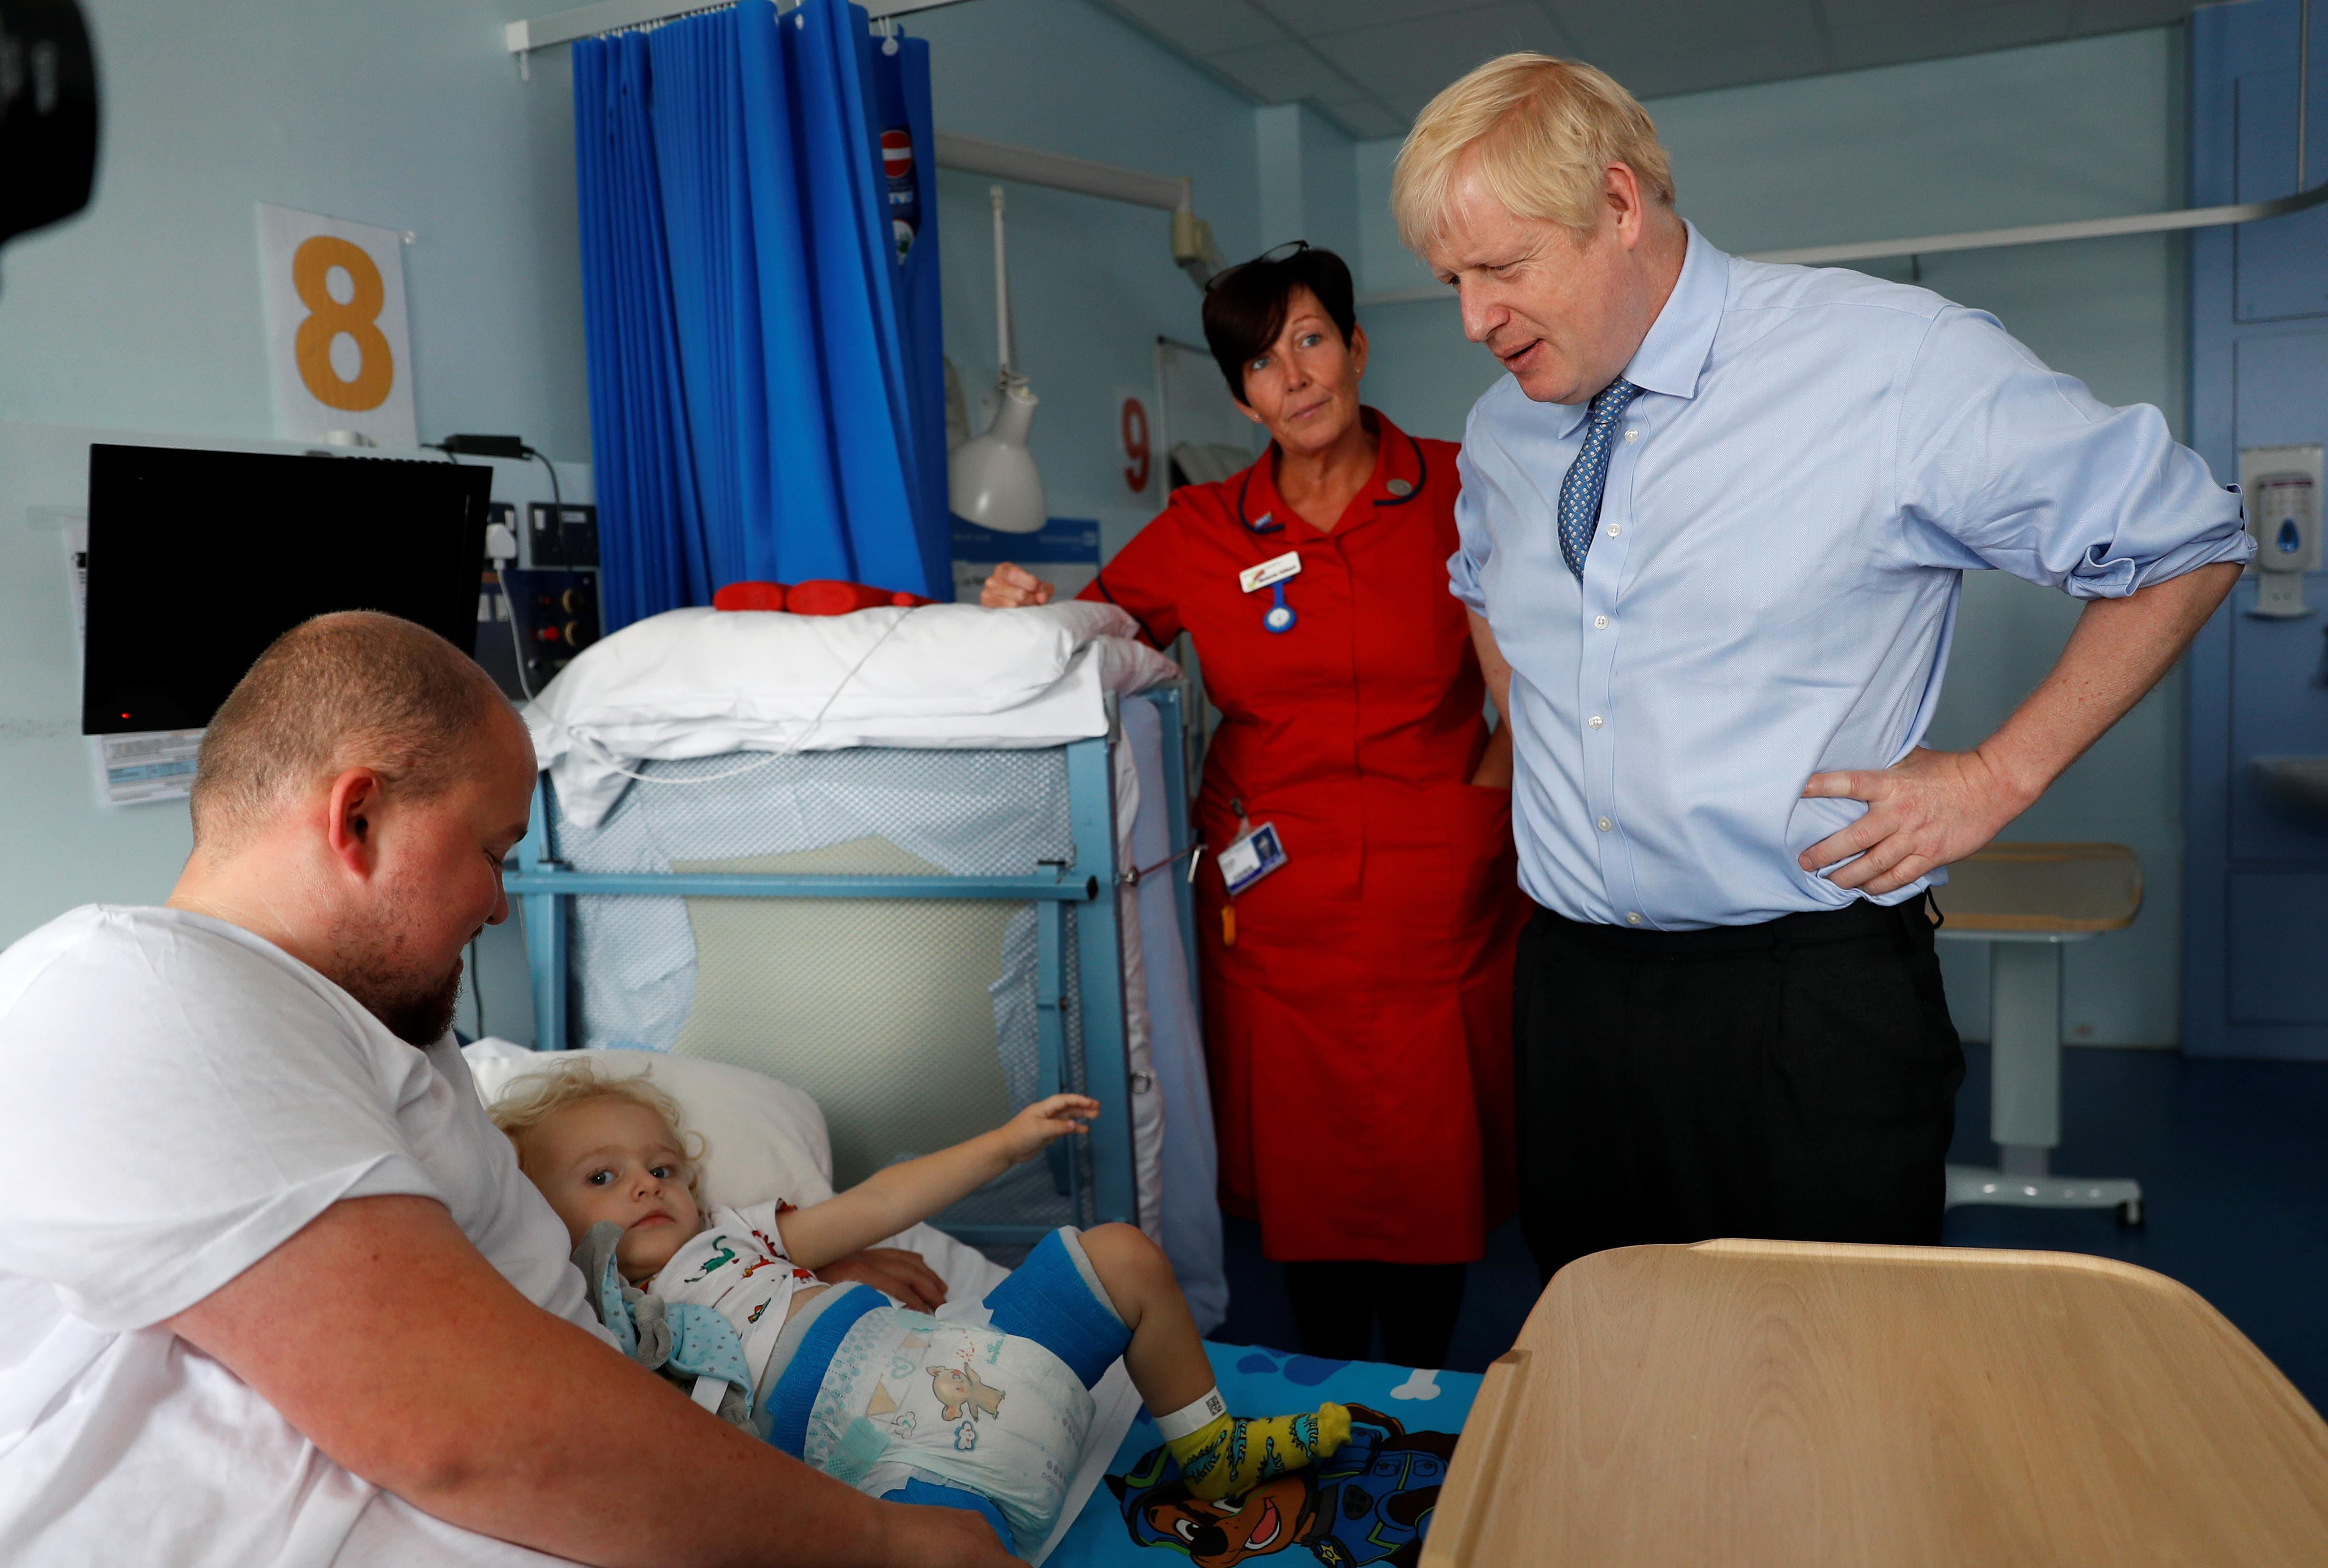 UK's Johnson slams 'mumbo-jumbo' about vaccines after measles rates rise